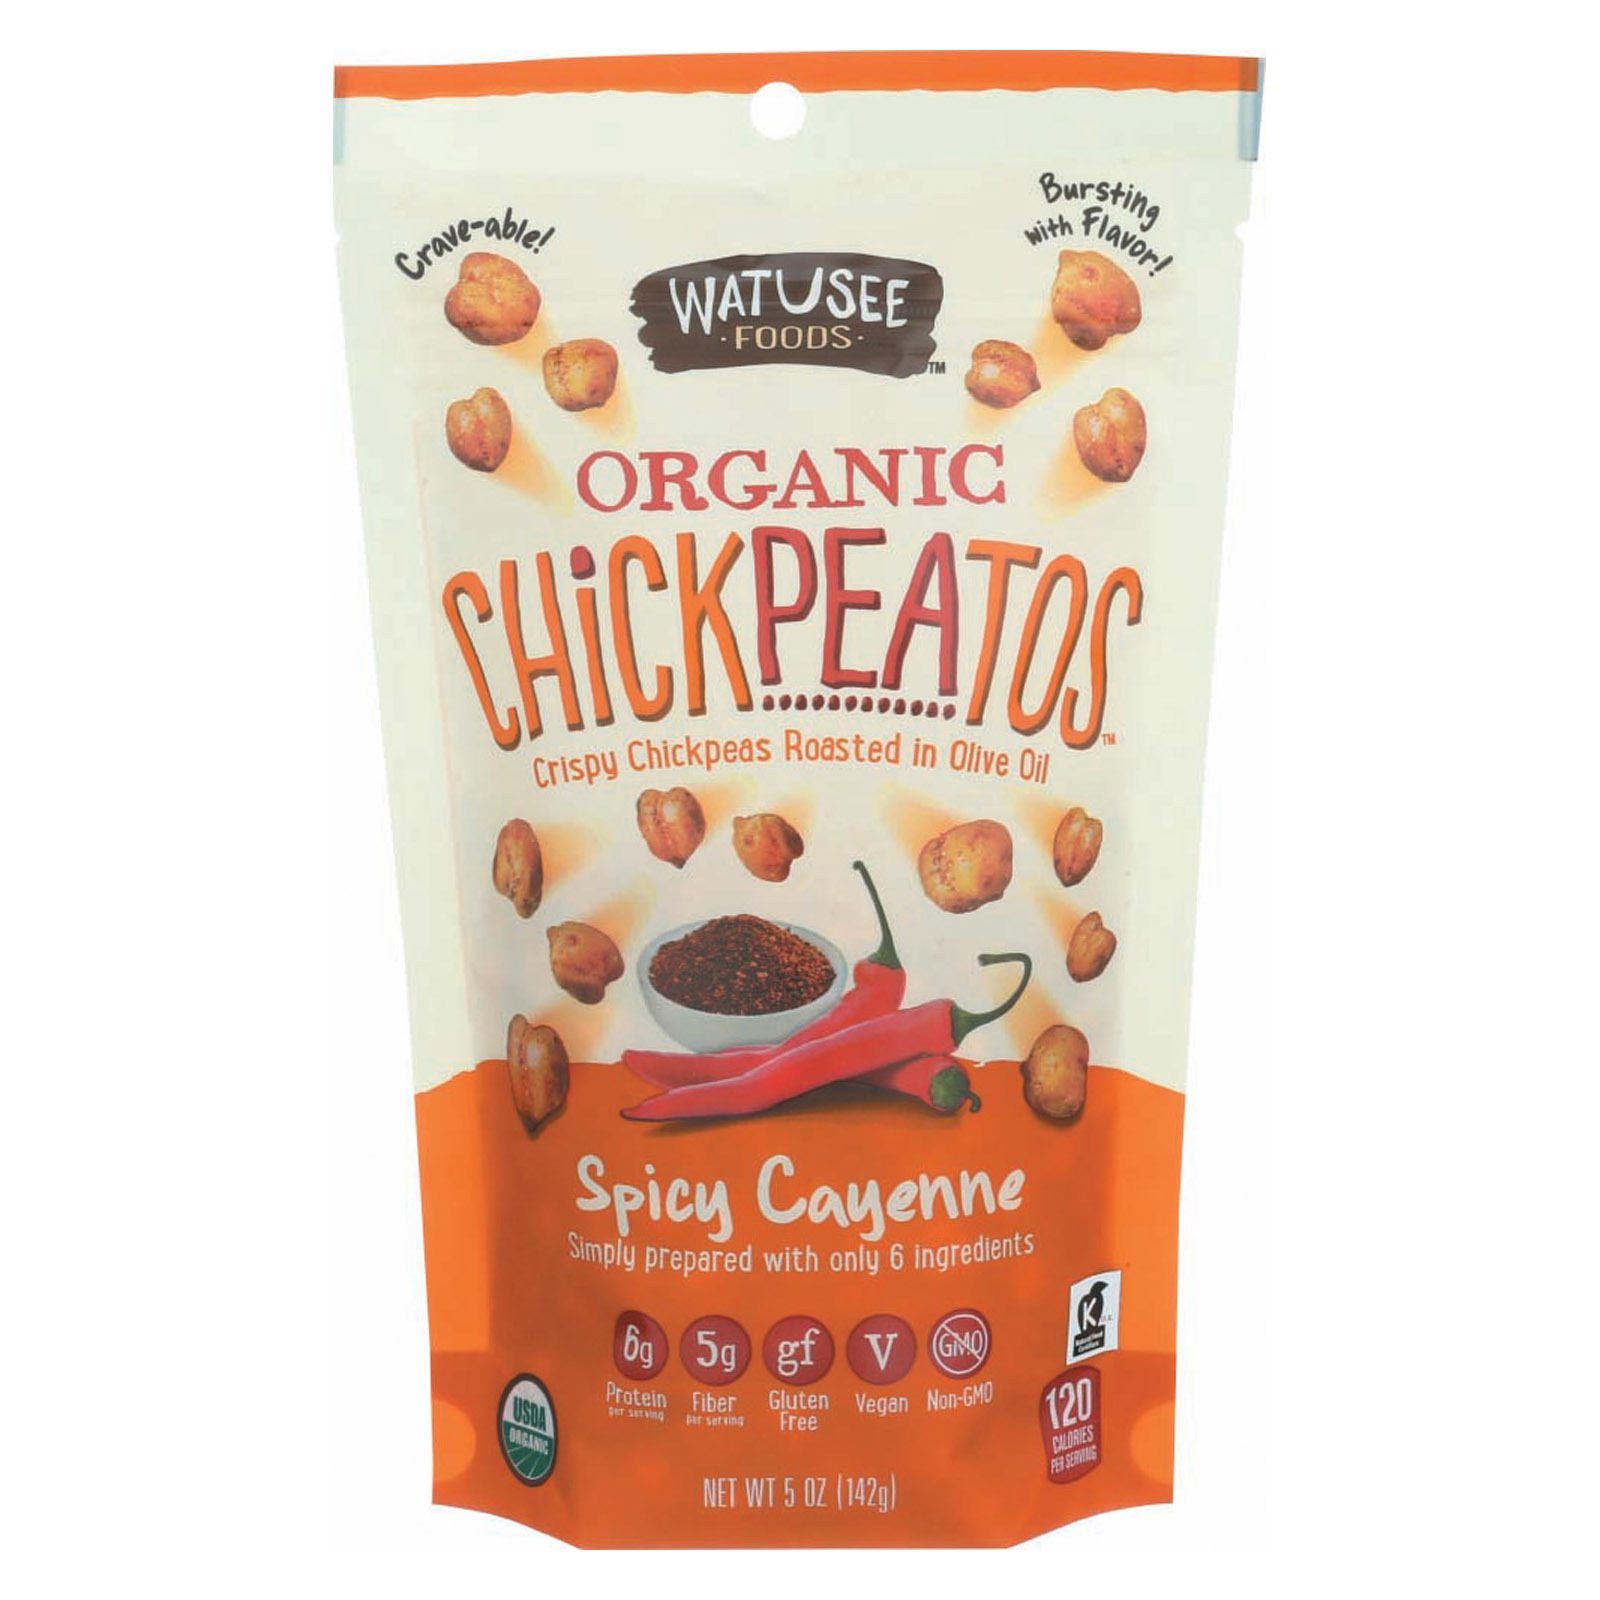 Watusee Foods Organic Chickpeas - Spicy Cayenne - Case of 12 - 5 oz